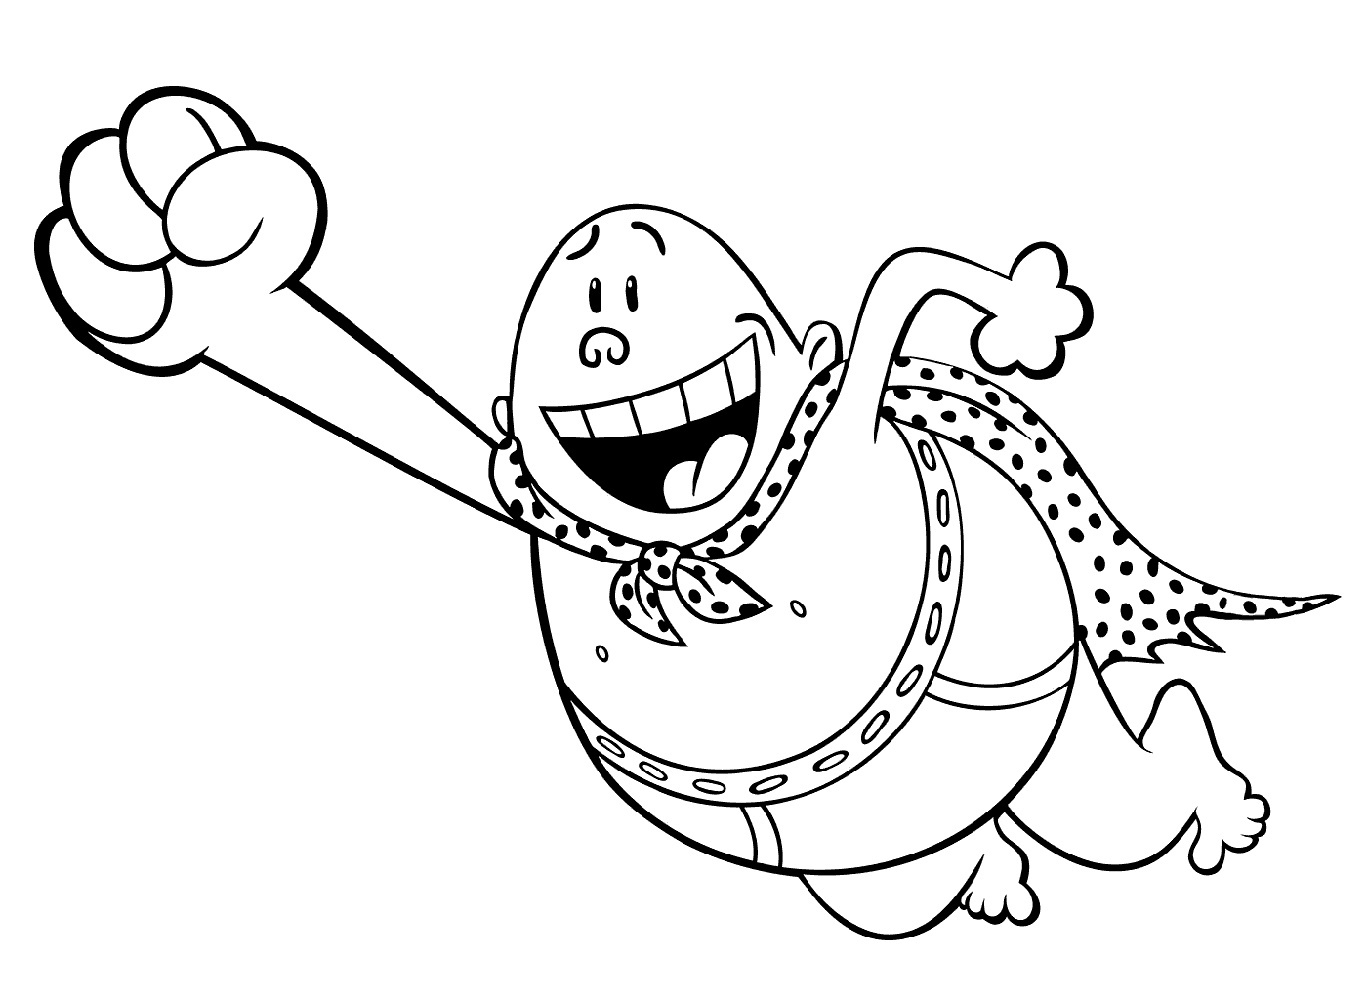 Captain Underpants Coloring Pages Free